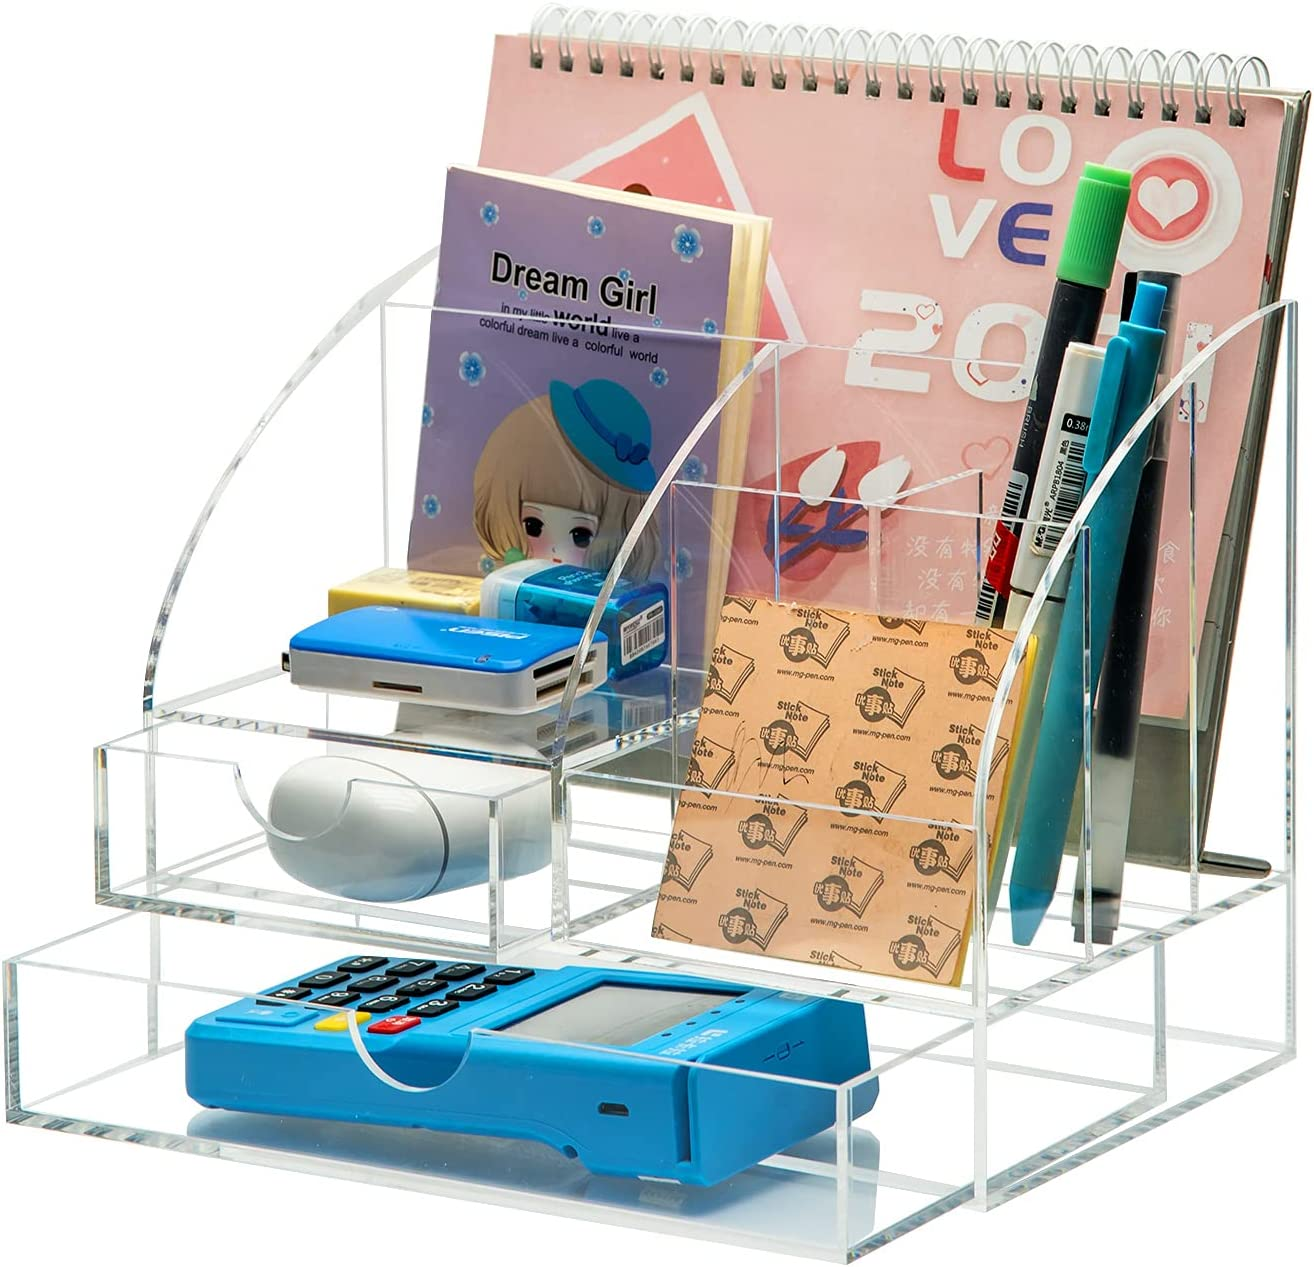 Gadexpha Acrylic Desk Ranking TOP11 Organizer With 2 Drawers Clear Outlet SALE Pen Holder